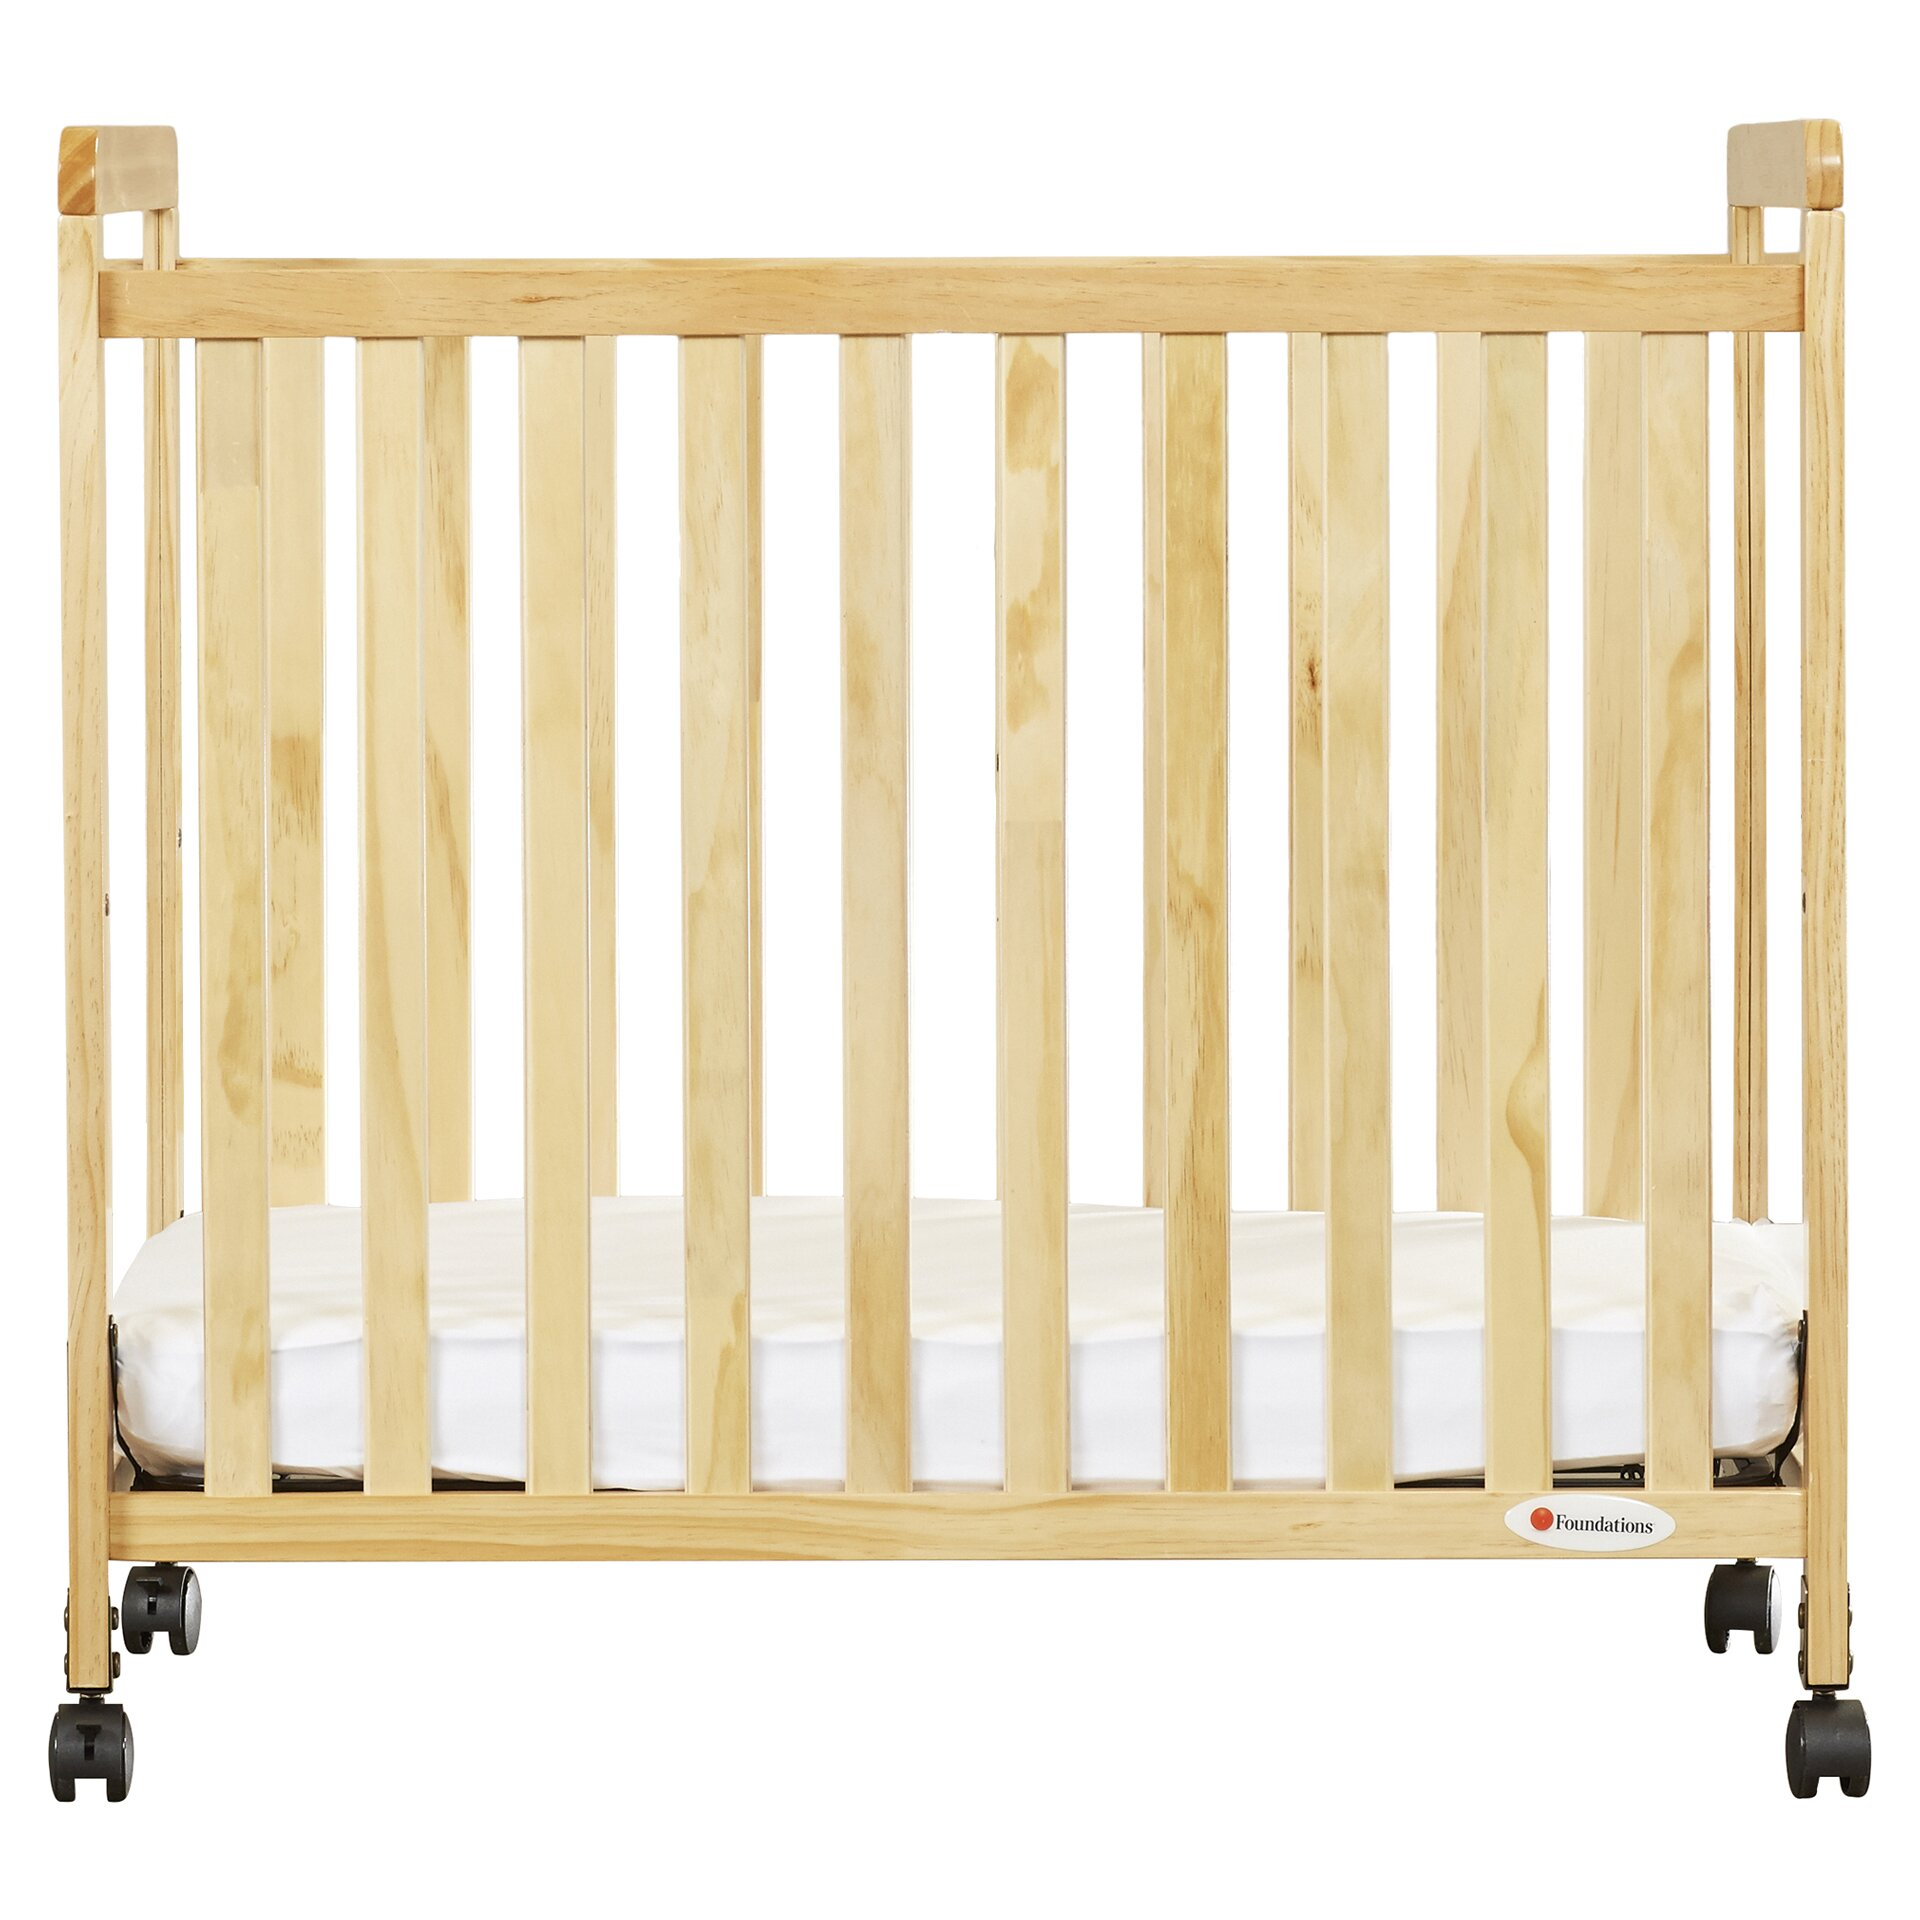 crib size mattress diy baby crib plans dimensions plans free mini crib mattress size decor